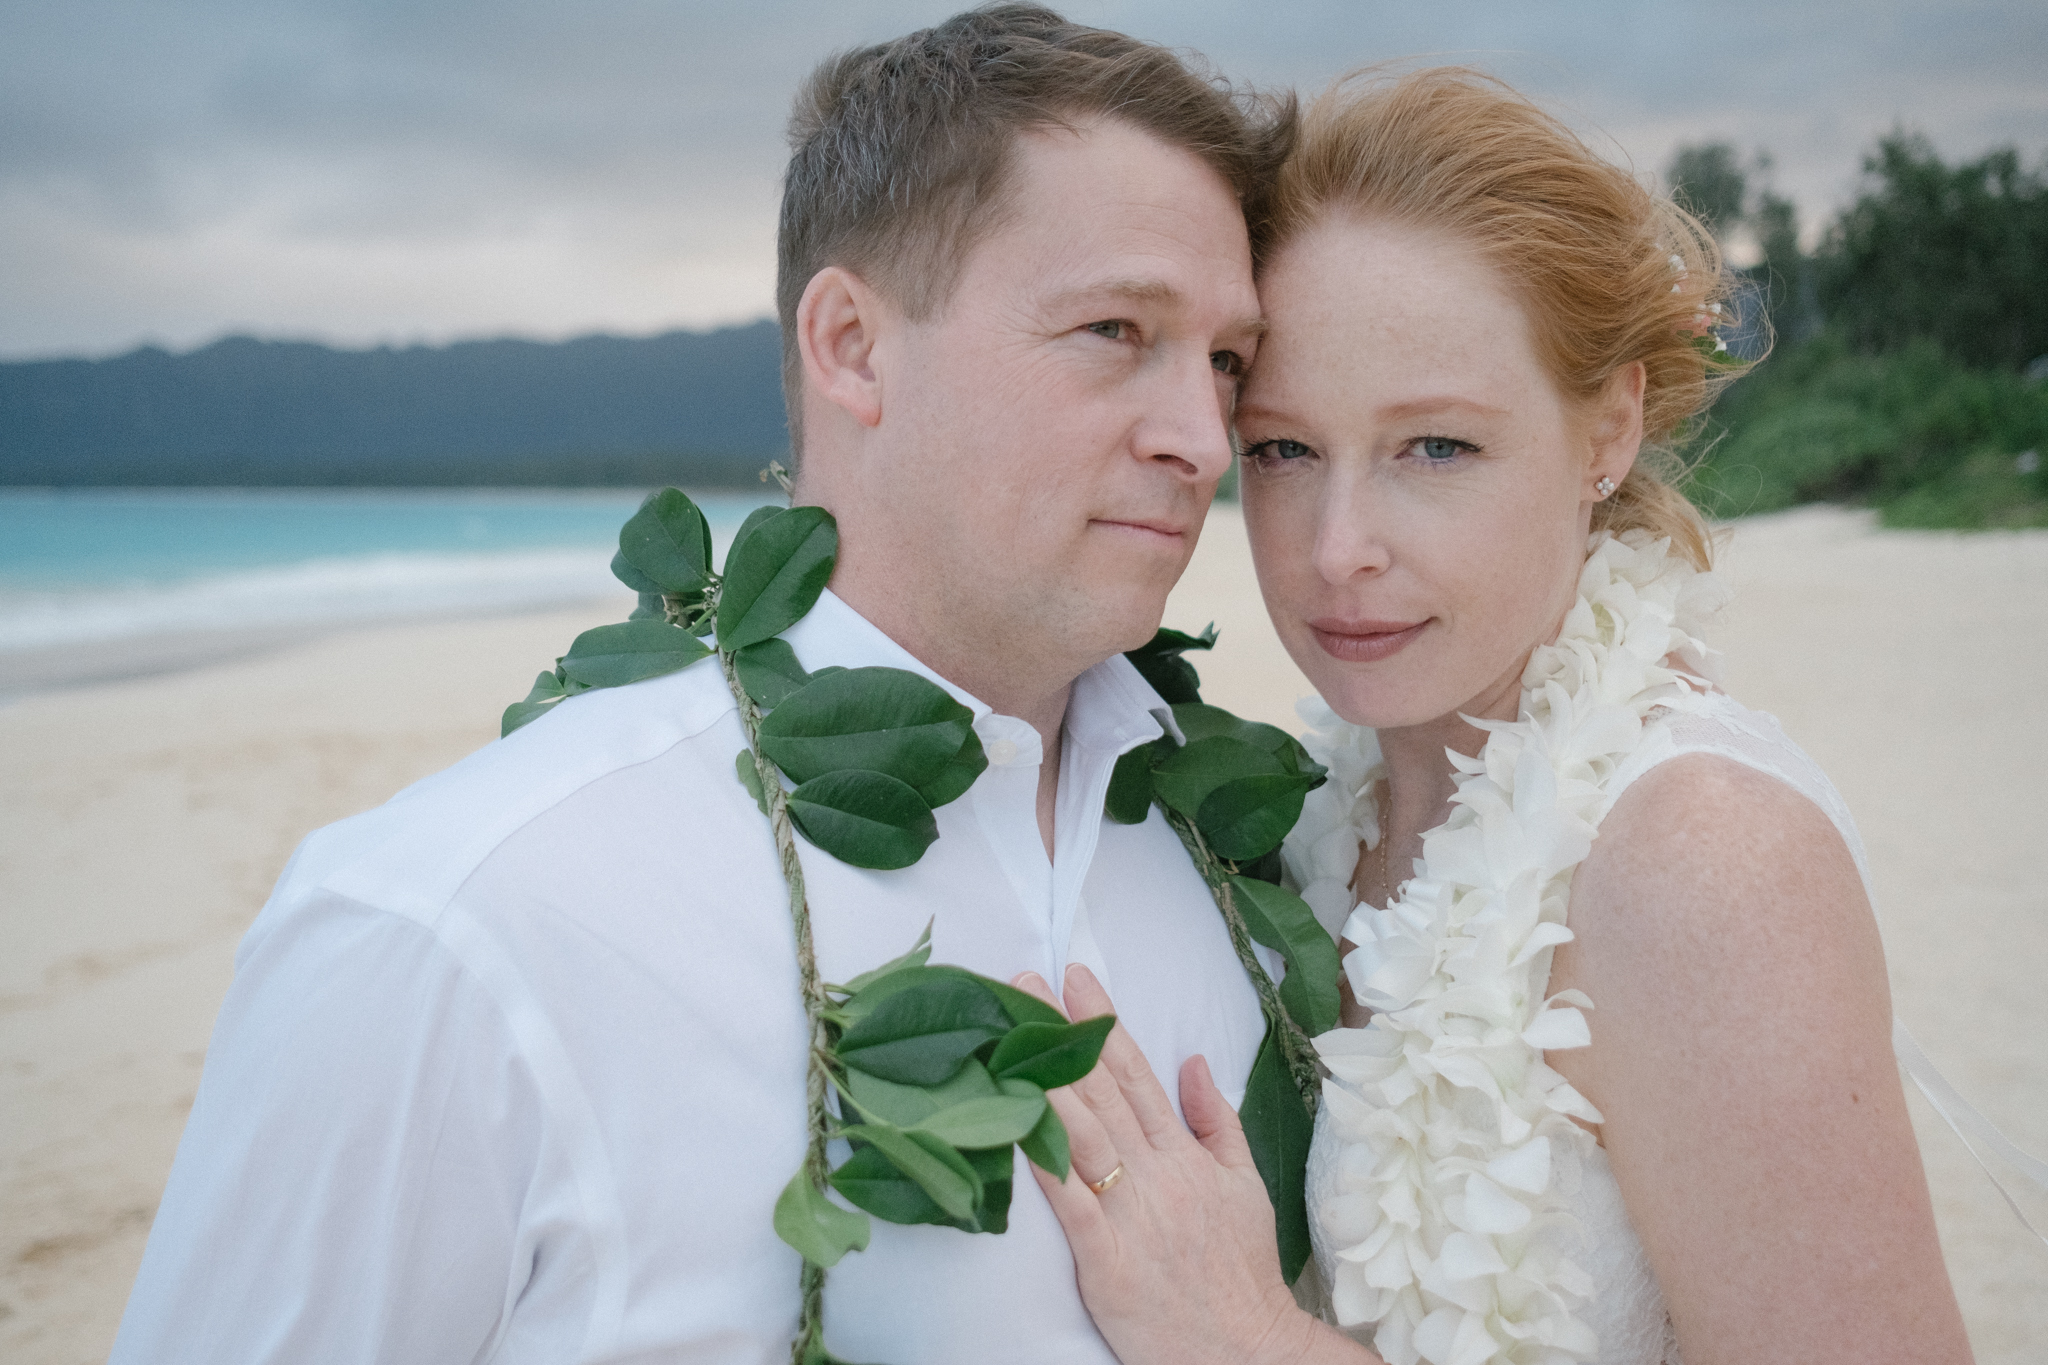 waimanalo_beach_wedding_photographer-43.jpg